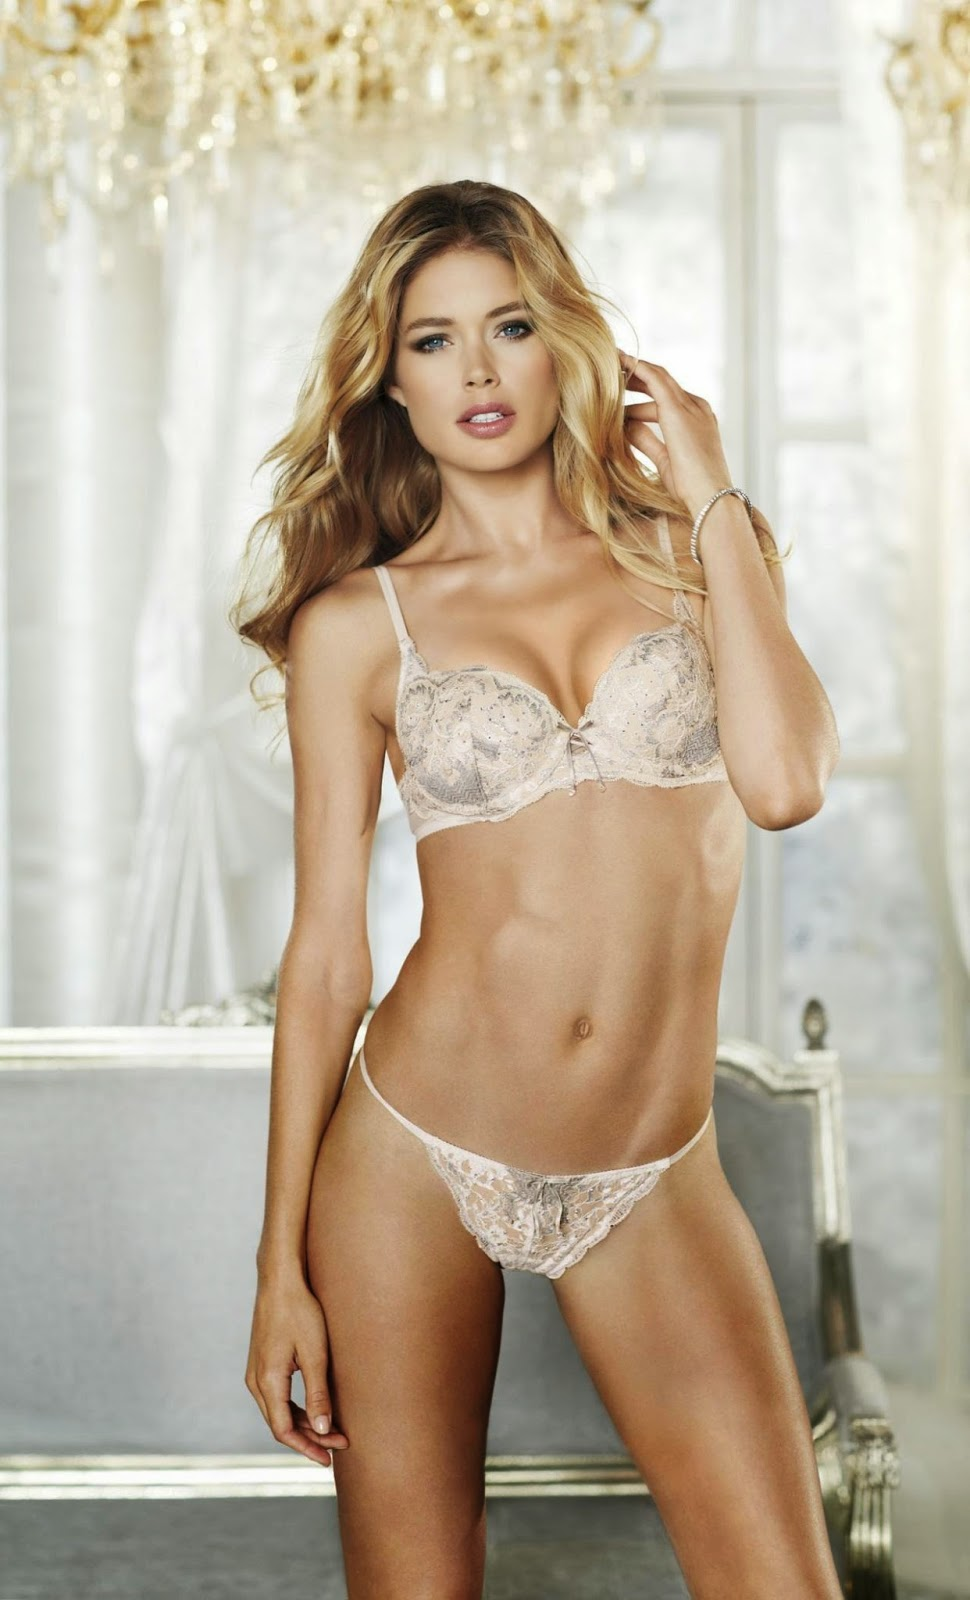 Doutzen Kroes a tease many men, it is because of the appearance of Doutzen Kroes are sexy also talk with adults who are tempting. Doutzen Kroes has a husband who likes to blind jealousy, this is because Doutzen Kroes had been having an affair with famous celebrities, celebrities such as Tom Cruise. Doutzen Kroes is a beautiful goddess with the charm of a powerful sex for men.